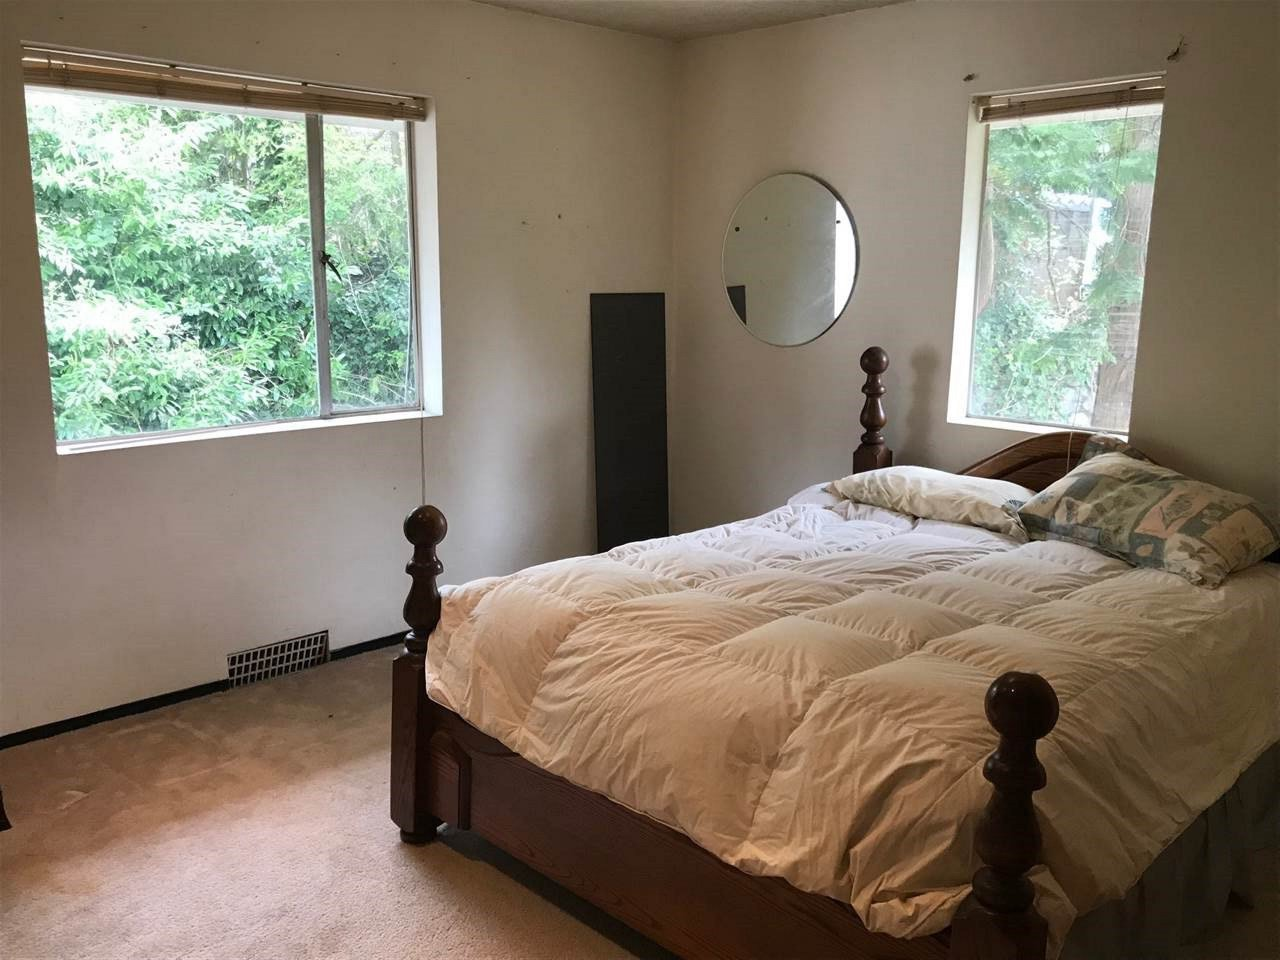 """Photo 11: Photos: 274 W ROCKLAND Road in North Vancouver: Upper Lonsdale House for sale in """"UPPER LONSDALE"""" : MLS®# R2360083"""